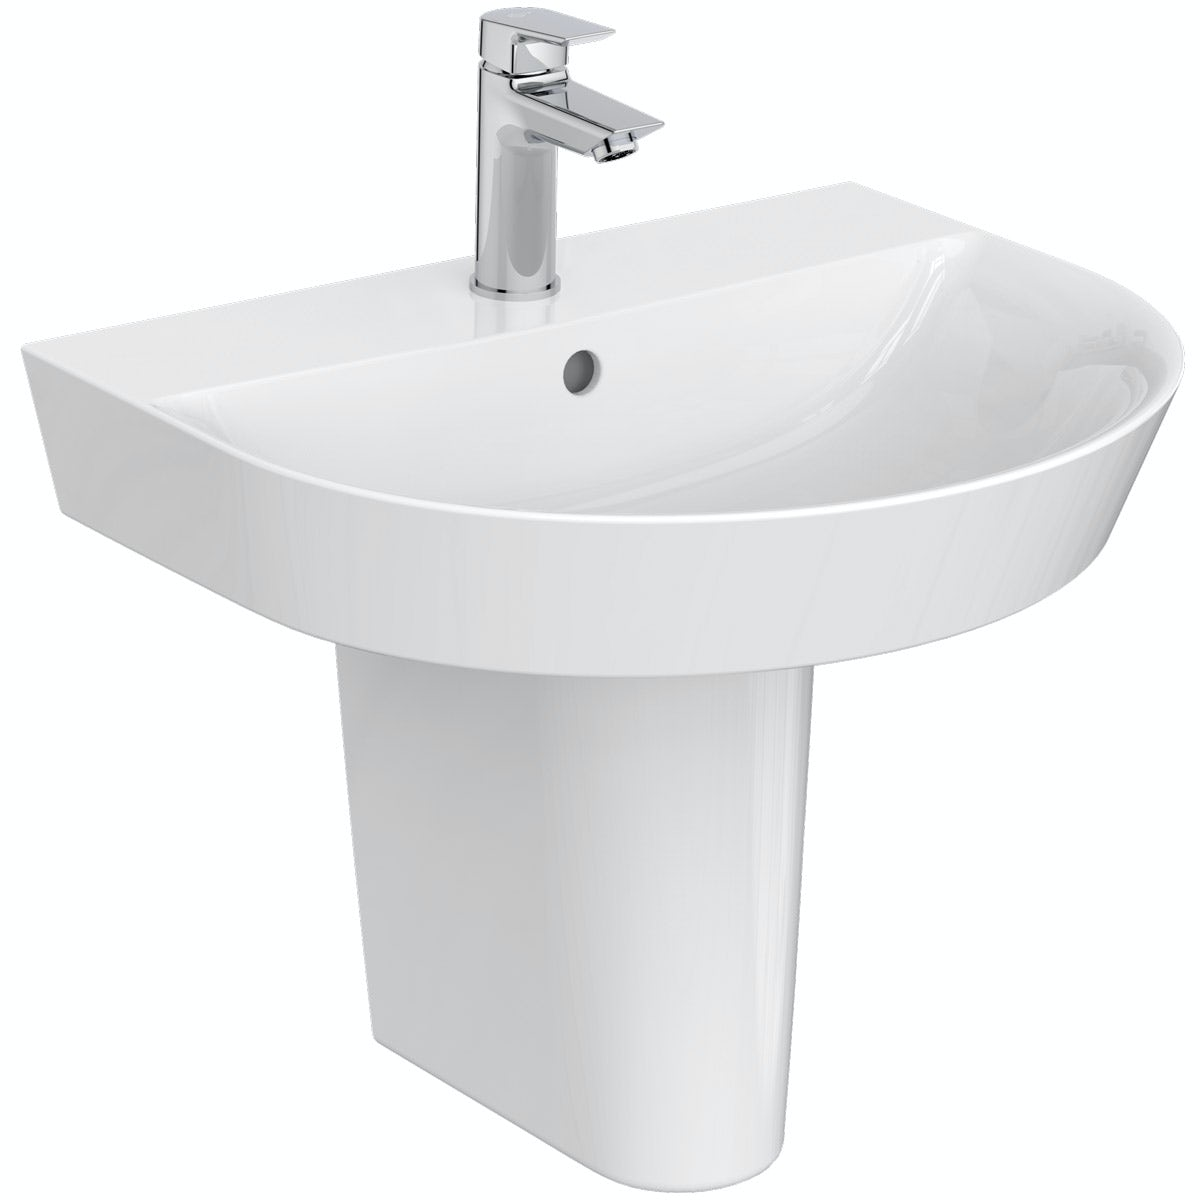 Ideal Standard Concept Air Arc 1 tap hole semi pedestal basin 550mm